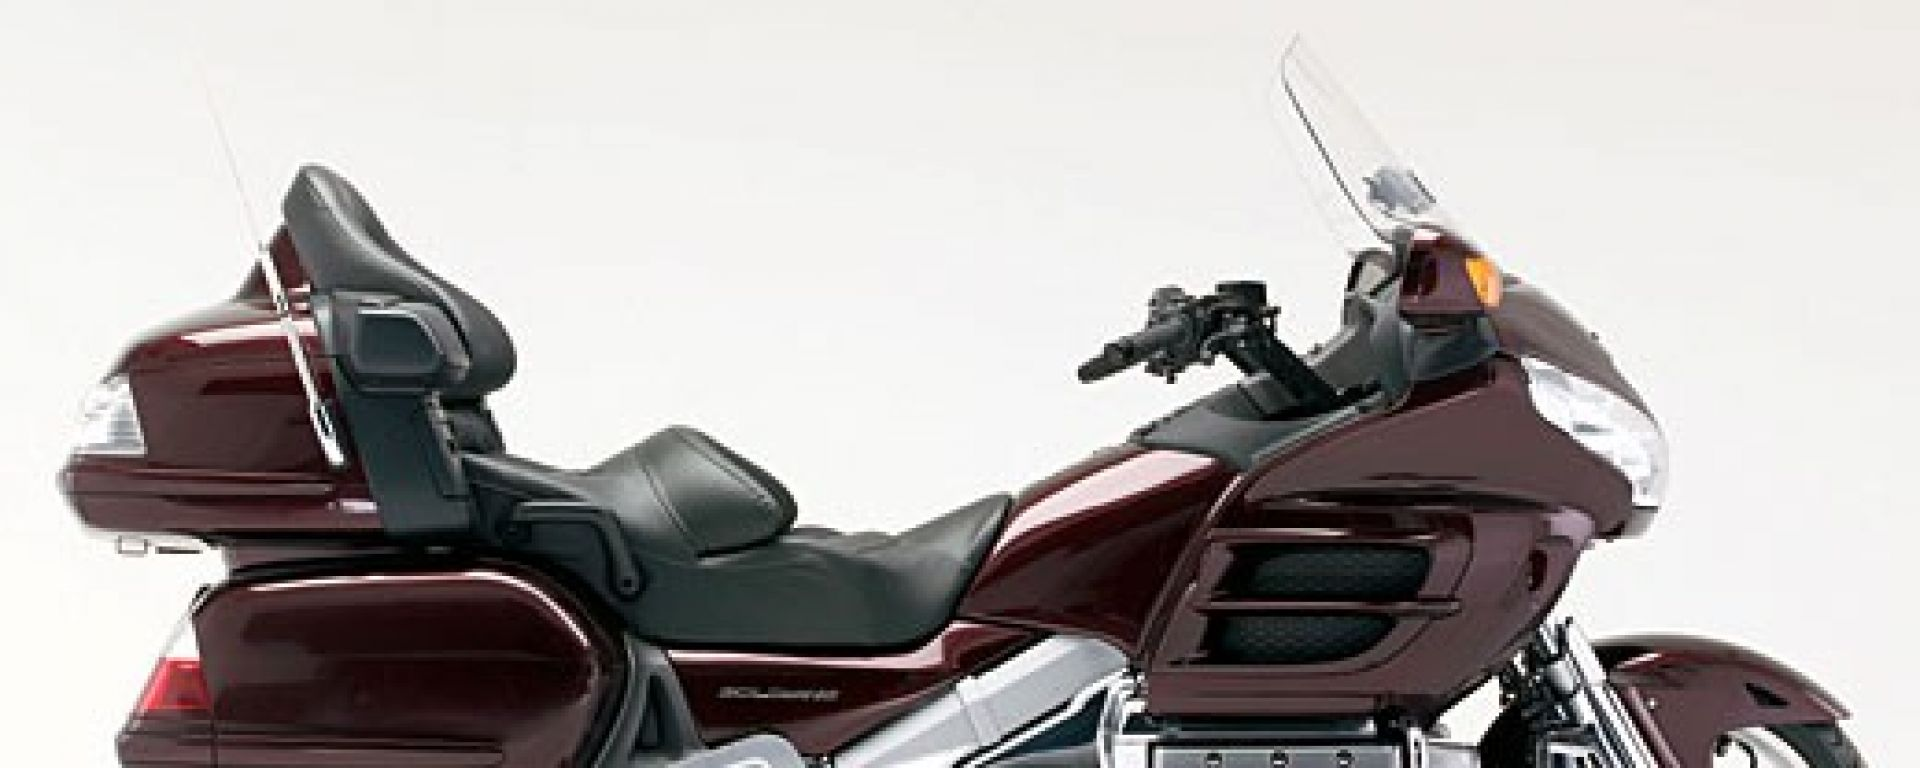 Honda Gold Wing 2006